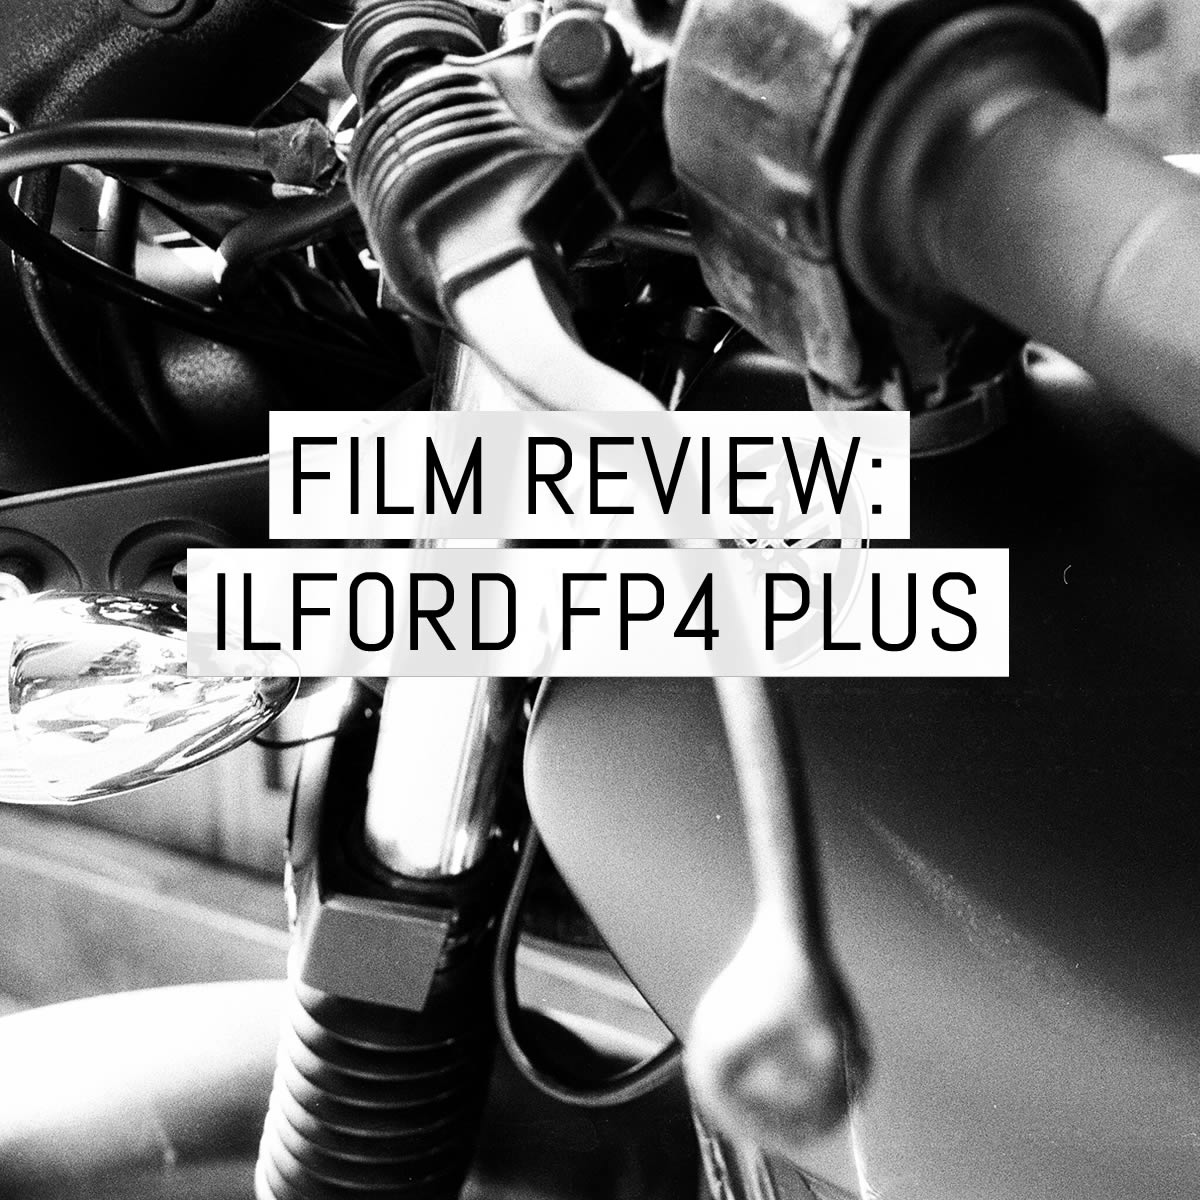 Ilford hp5 plus motion picture film 35mm black and white film 1 roll.